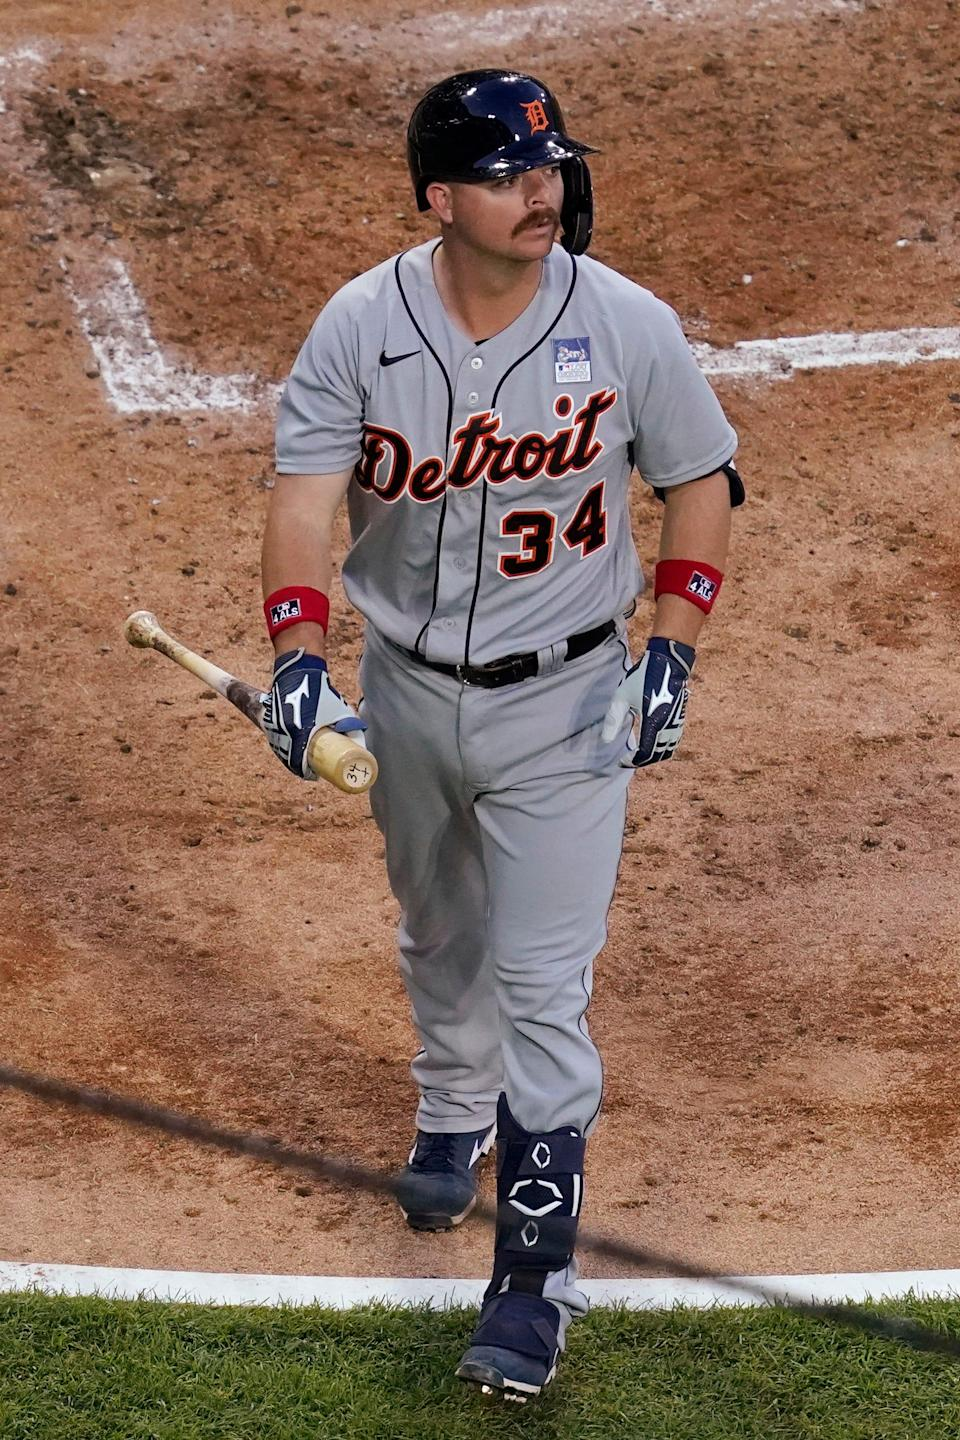 Tigers catcher Jake Rogers walks to the dugout after striking out swinging during the second inning on Thursday, June 3, 2021, in Chicago.